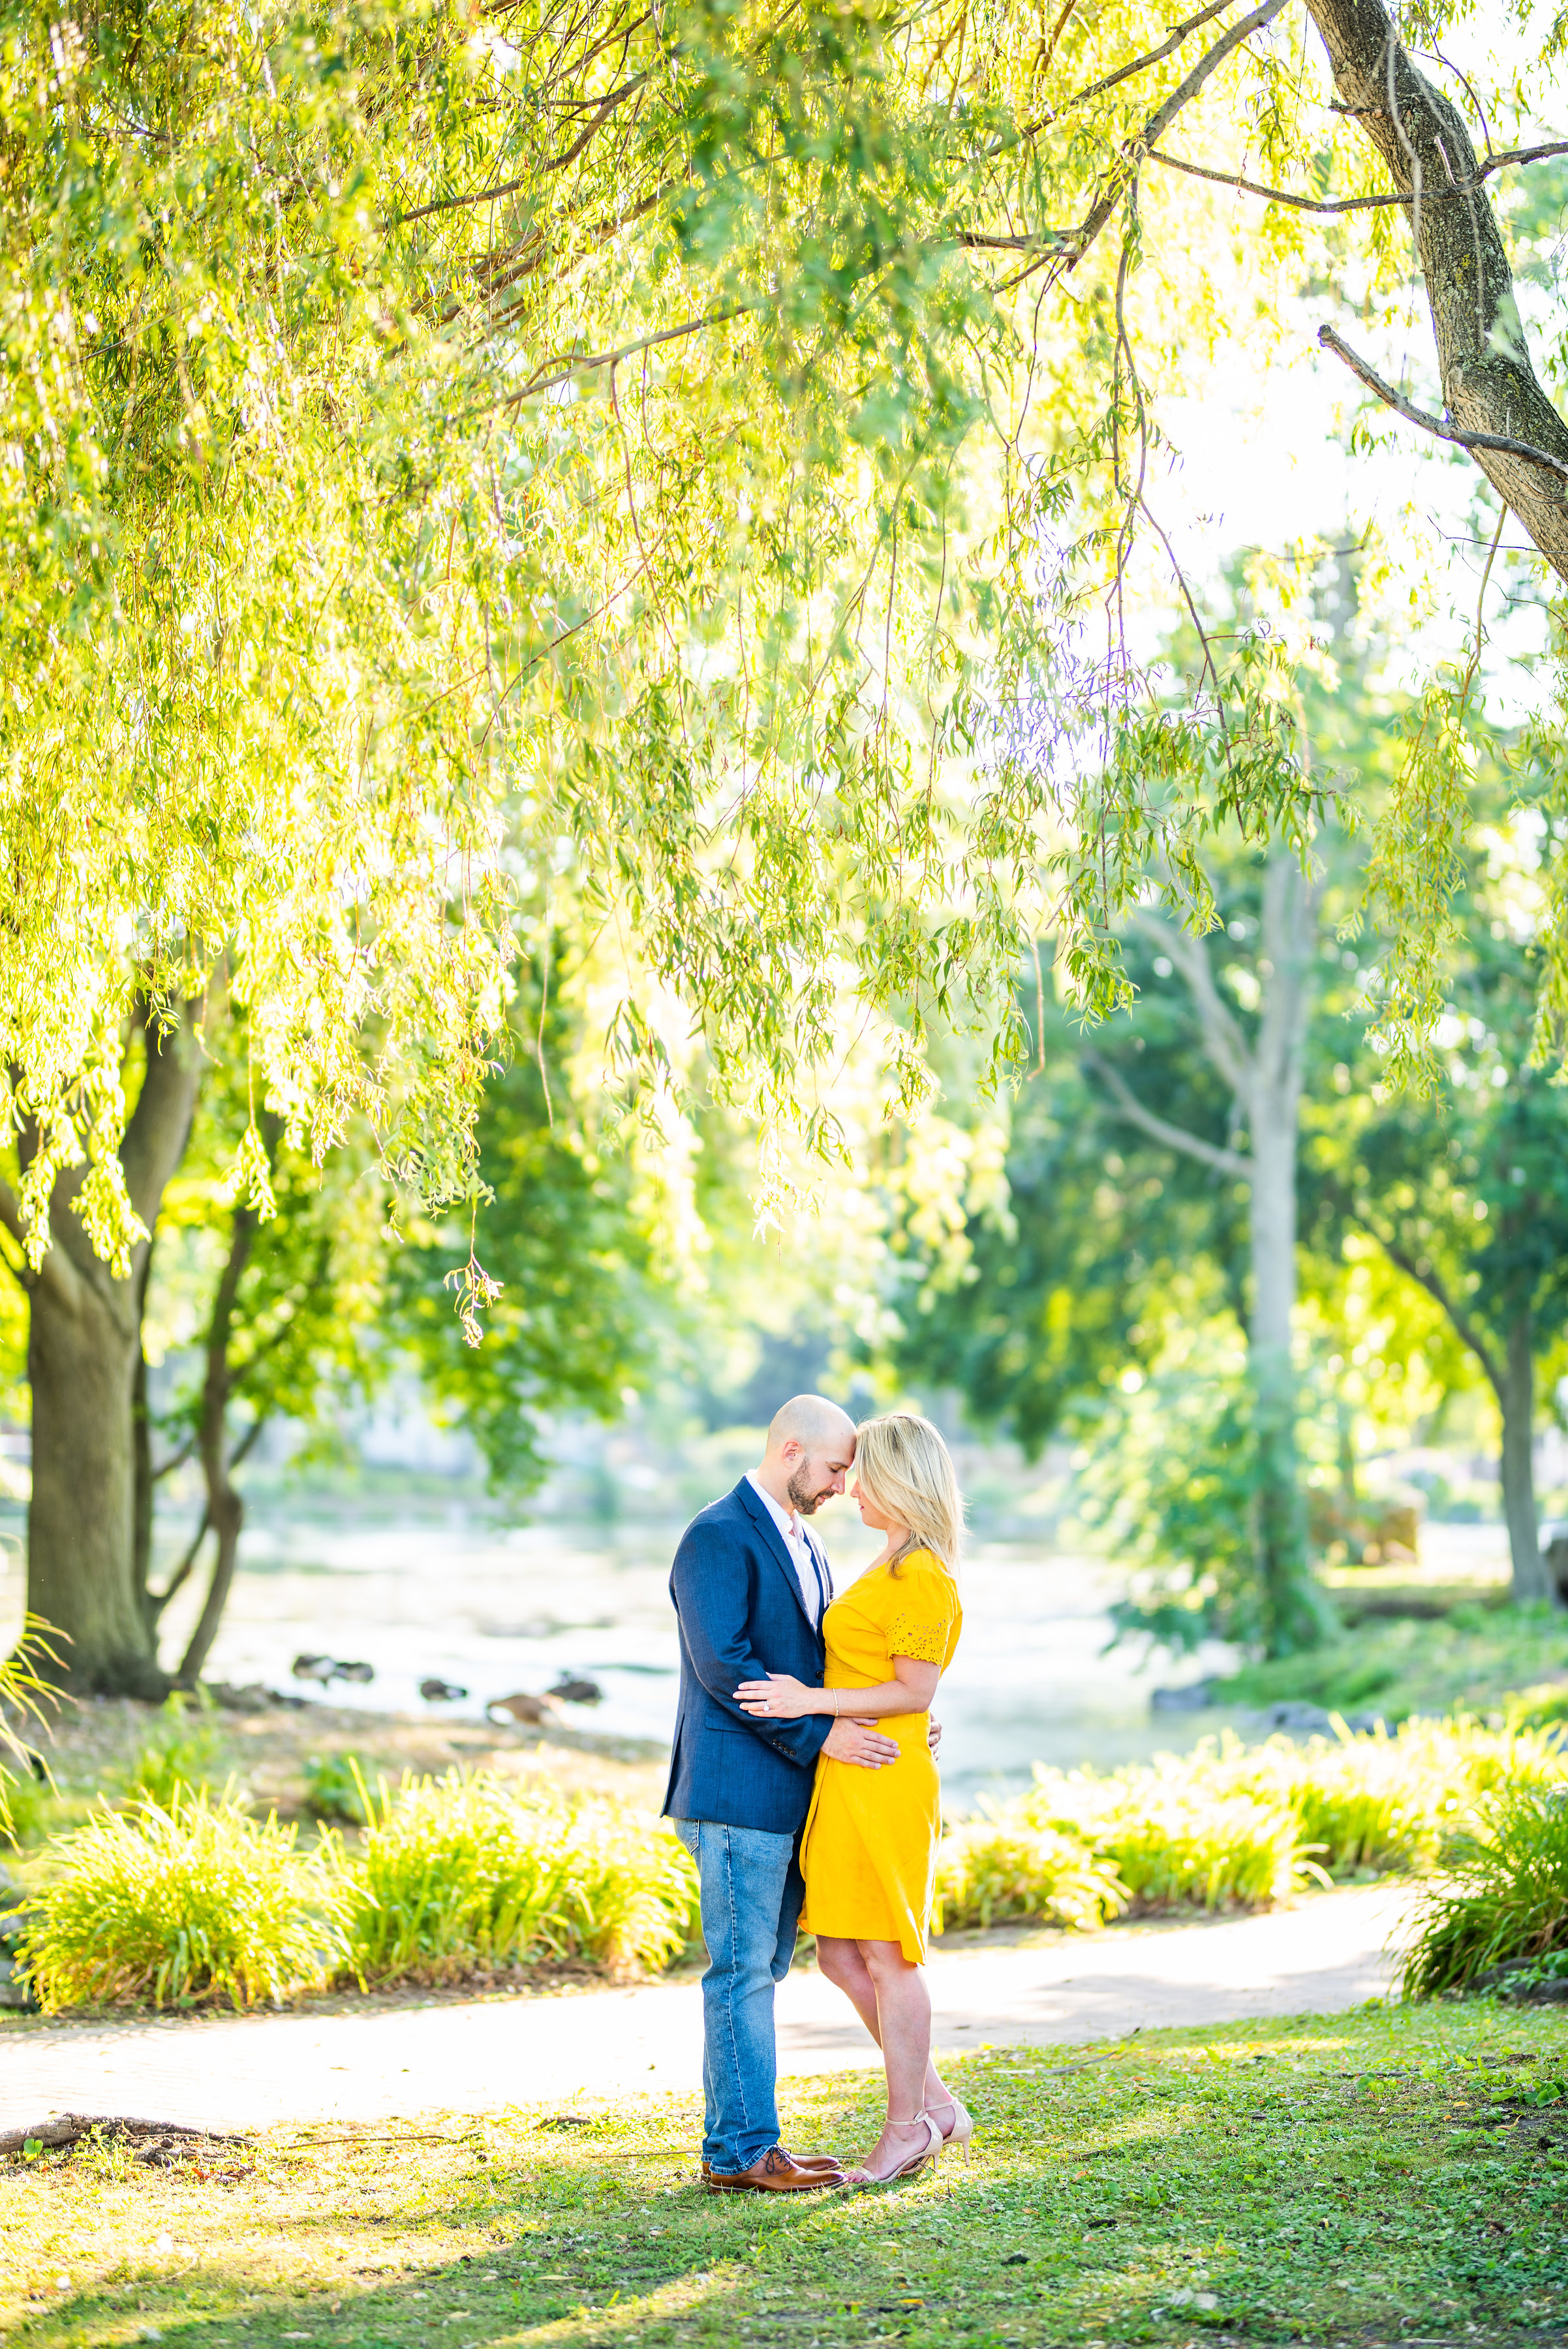 Hecksher Park Engagement Shoot | Long Island Wedding Photographer | Long Island Wedding Photographers10